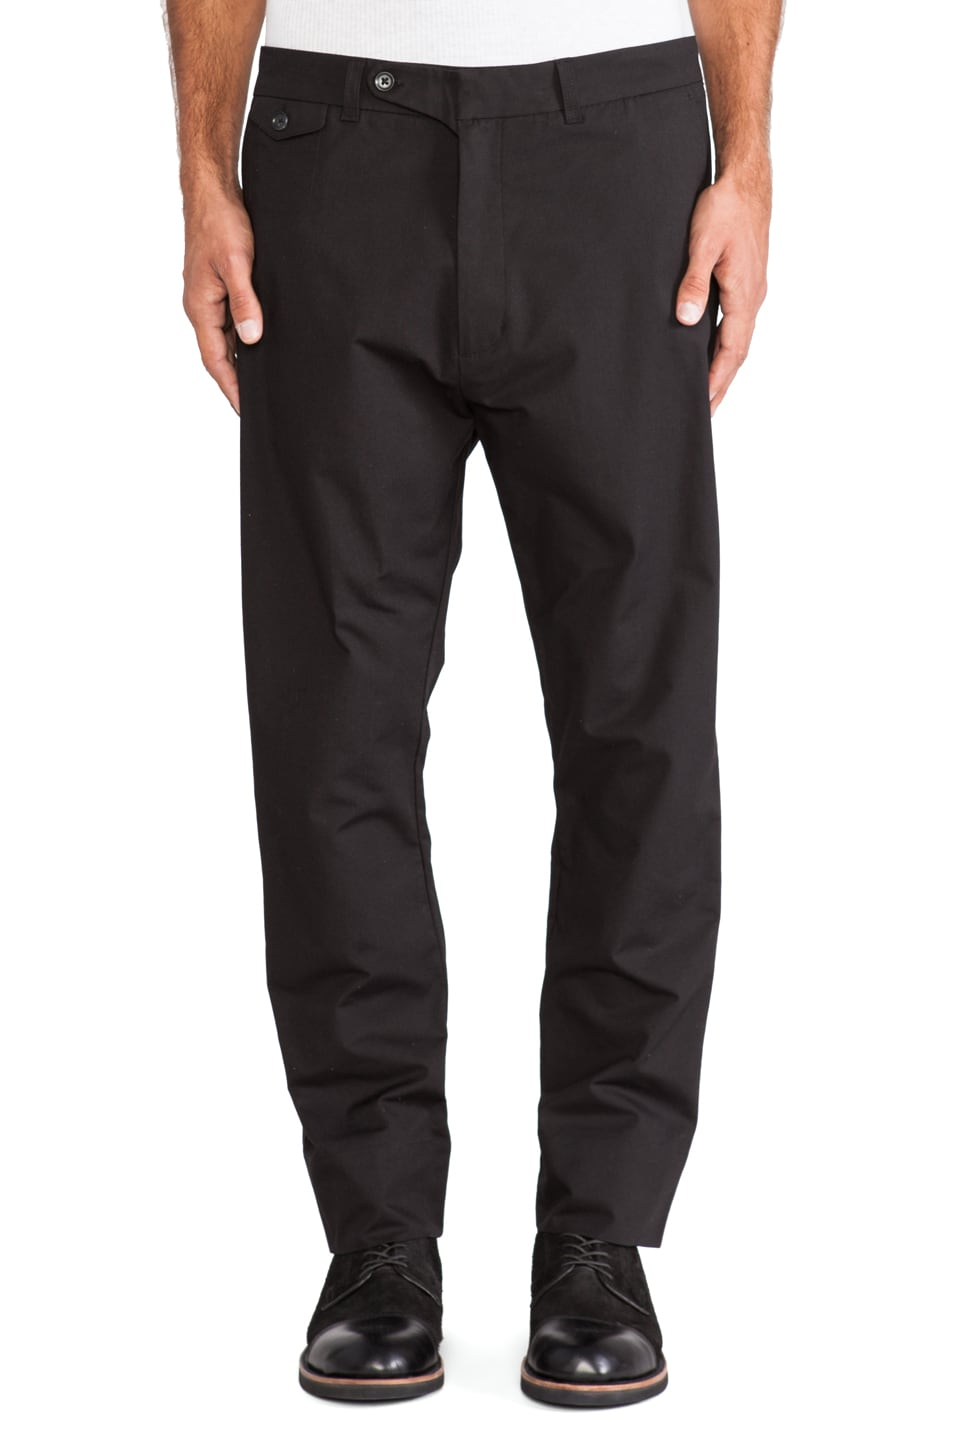 Hope Edwin Trouser in Black